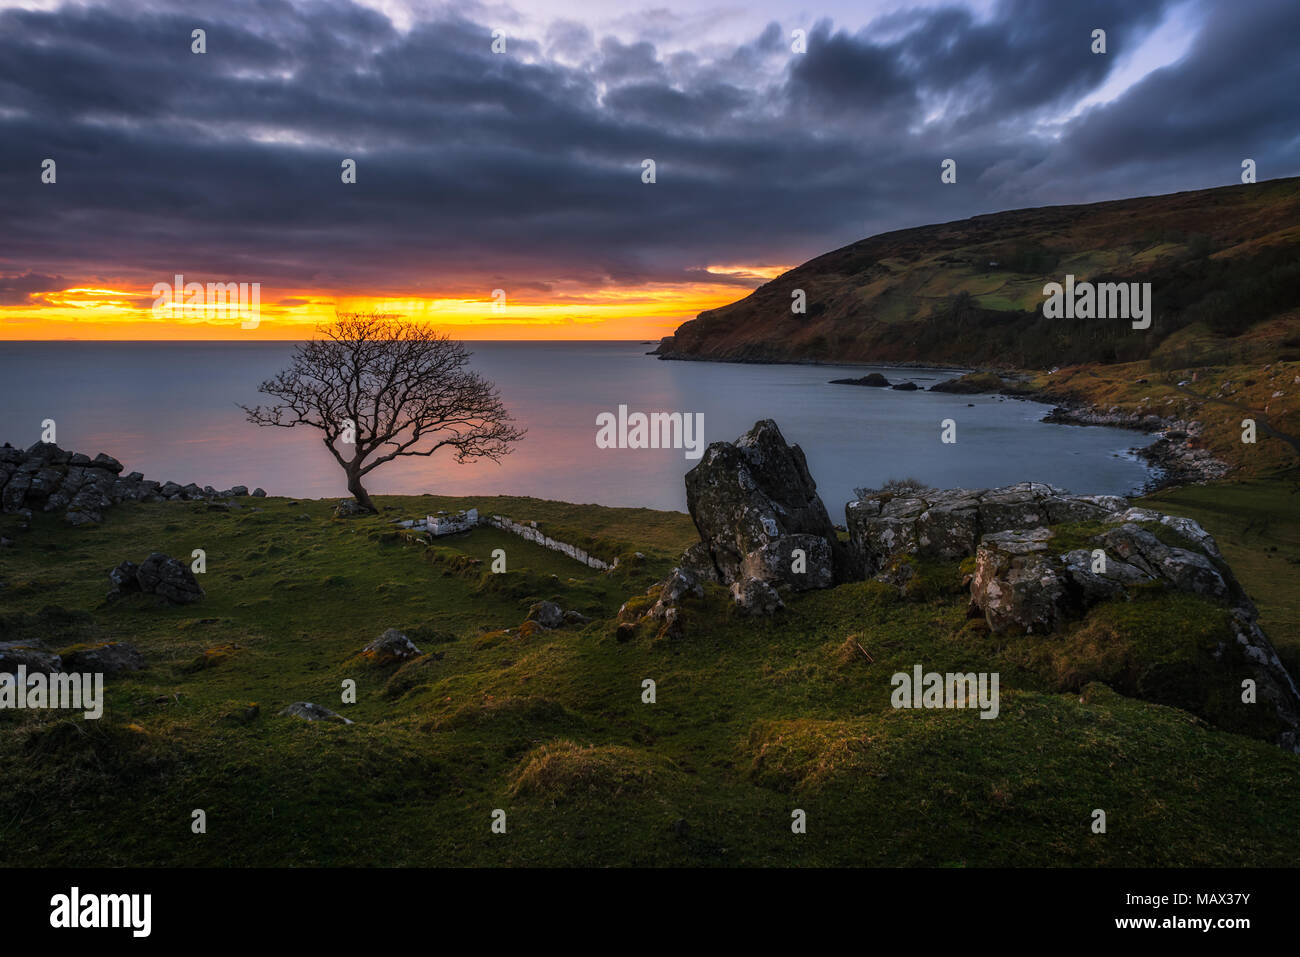 Murlough Nature Reserve in County Antrim - Northern Ireland - Stock Image